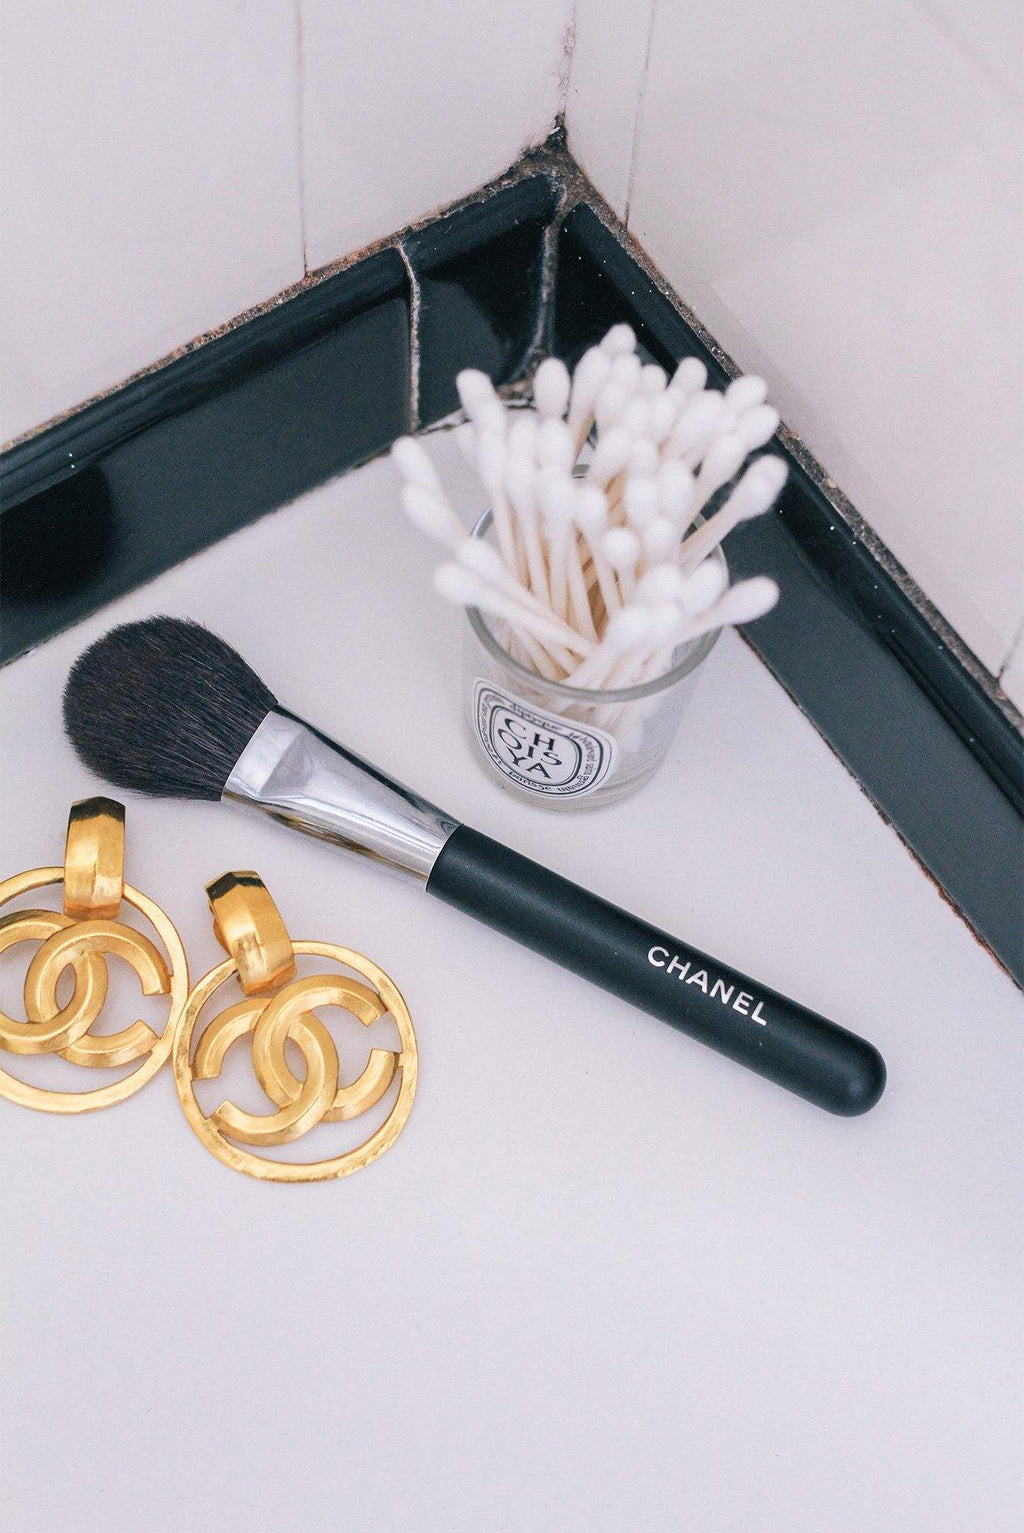 Chanel Les Pinceaux Powder Brush